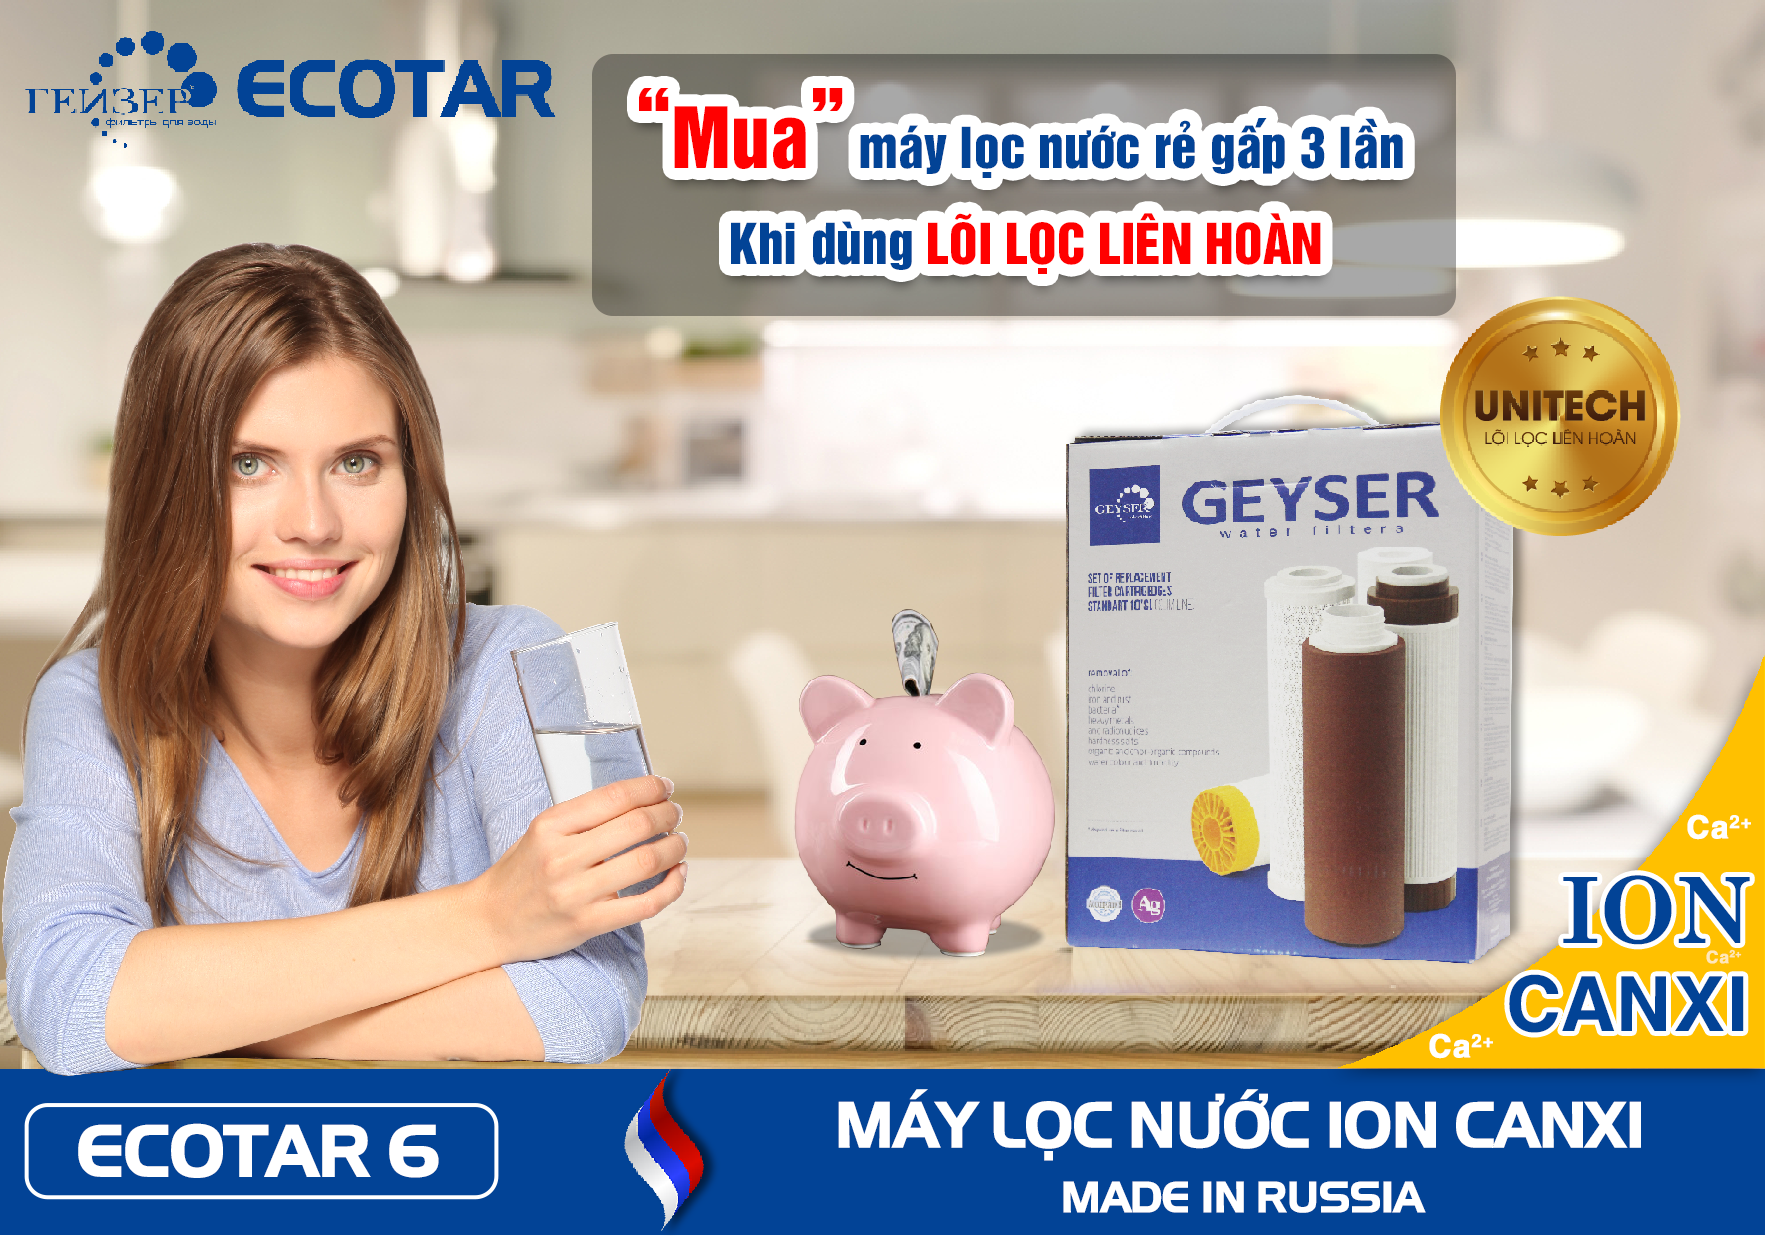 Nuoc Ion Canxi 1 1